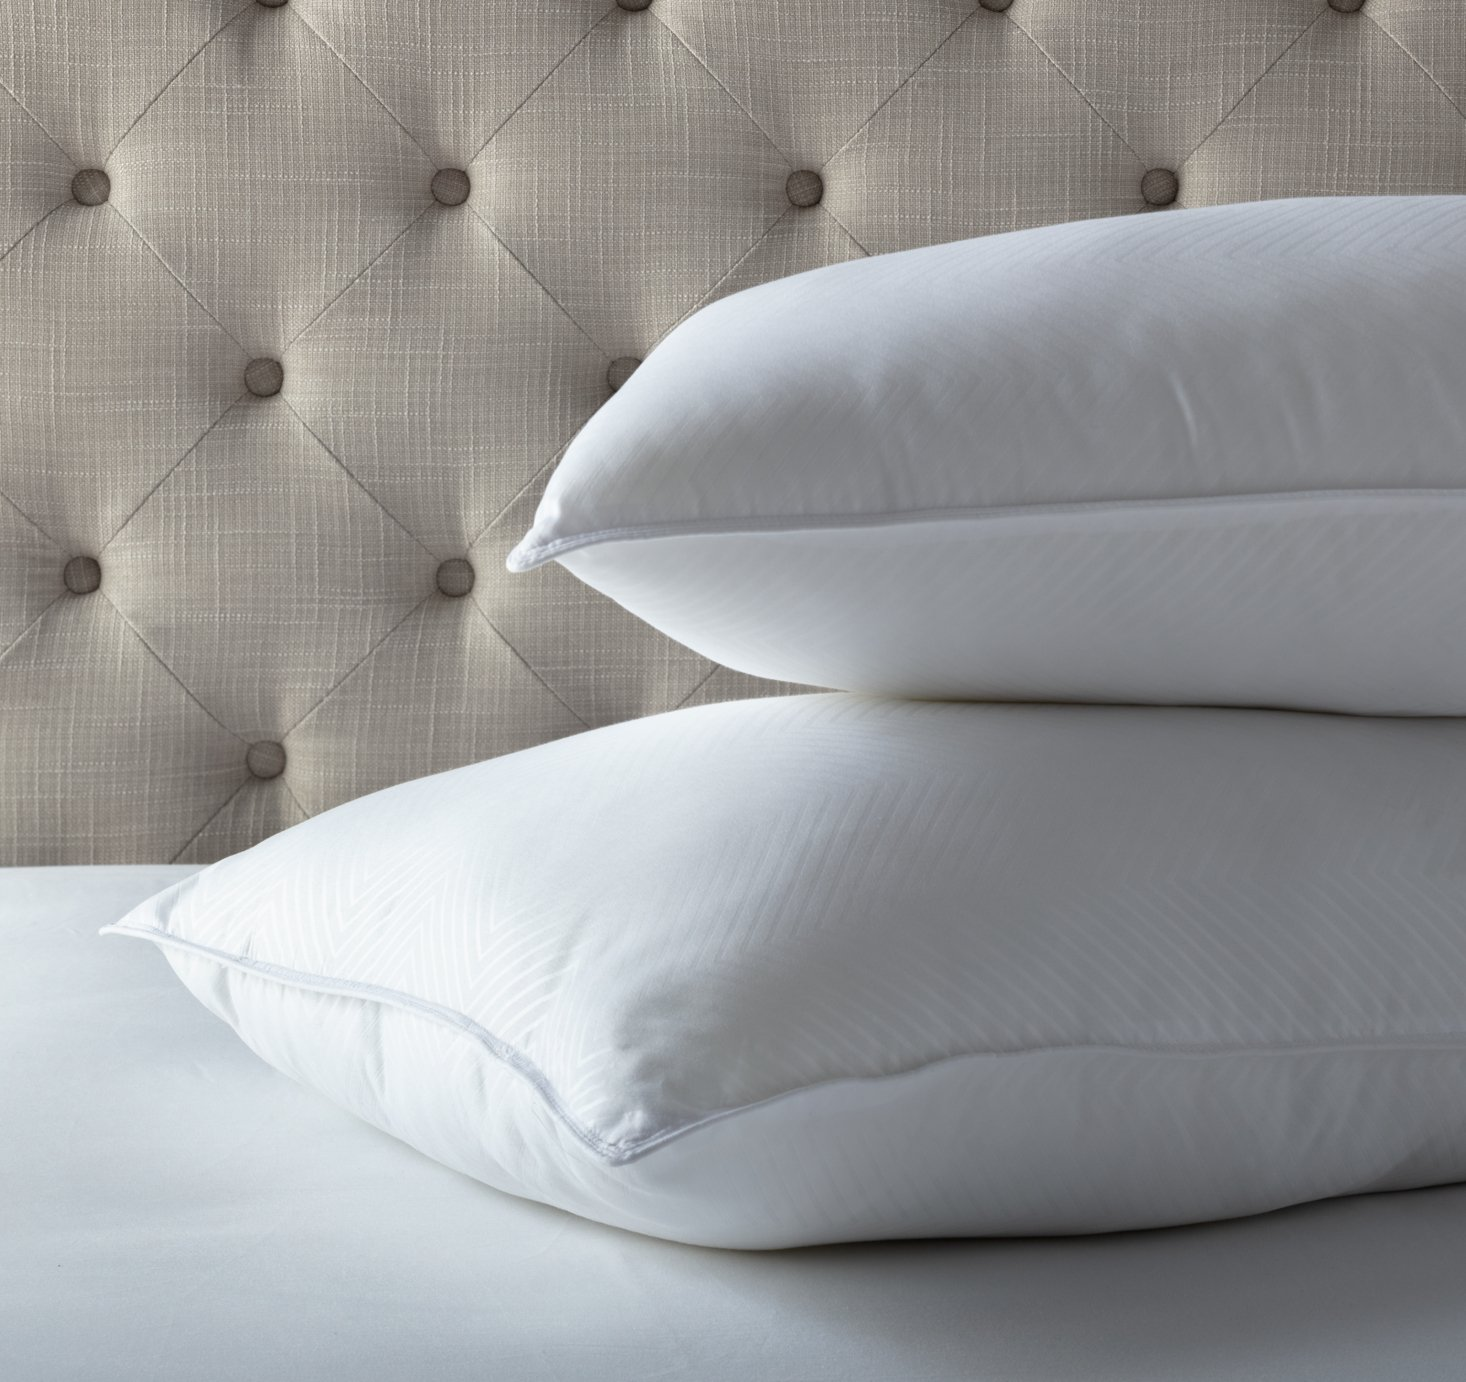 Forty Winks Soft As Down Pillow - 2 Pack